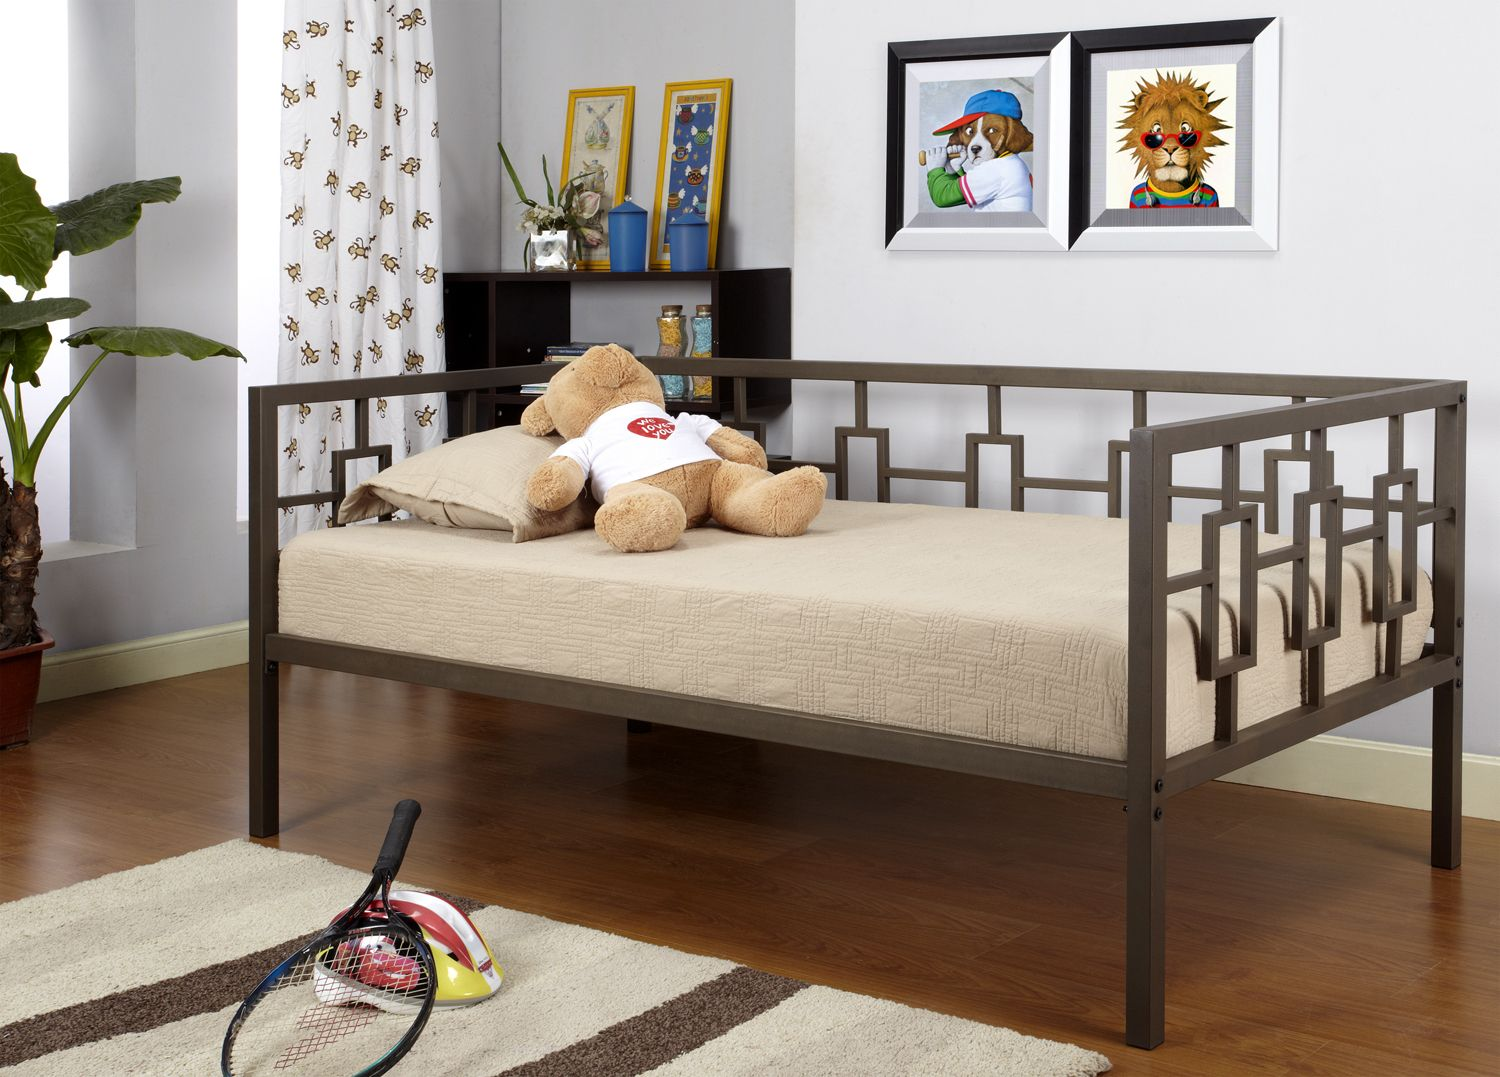 Details about Twin Size Metal HiRise Day Bed (Daybed